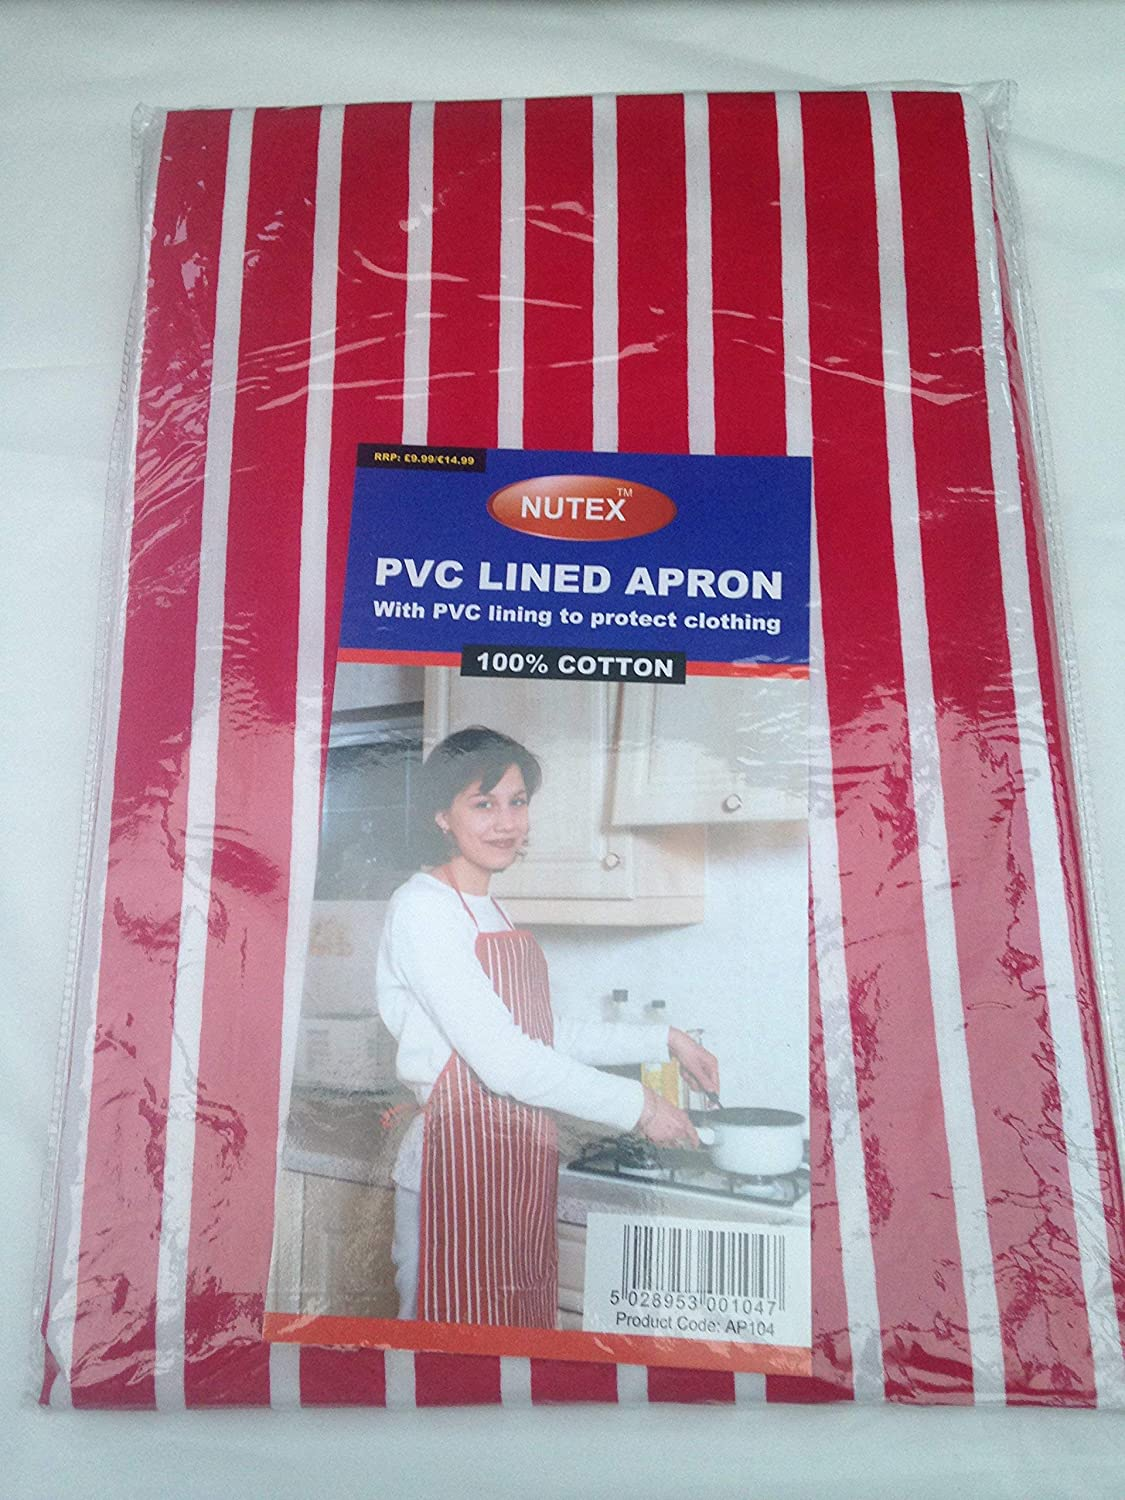 1 x red chef apron pvc lined 100% cotton apron for cooking bbq chef etc free delivery